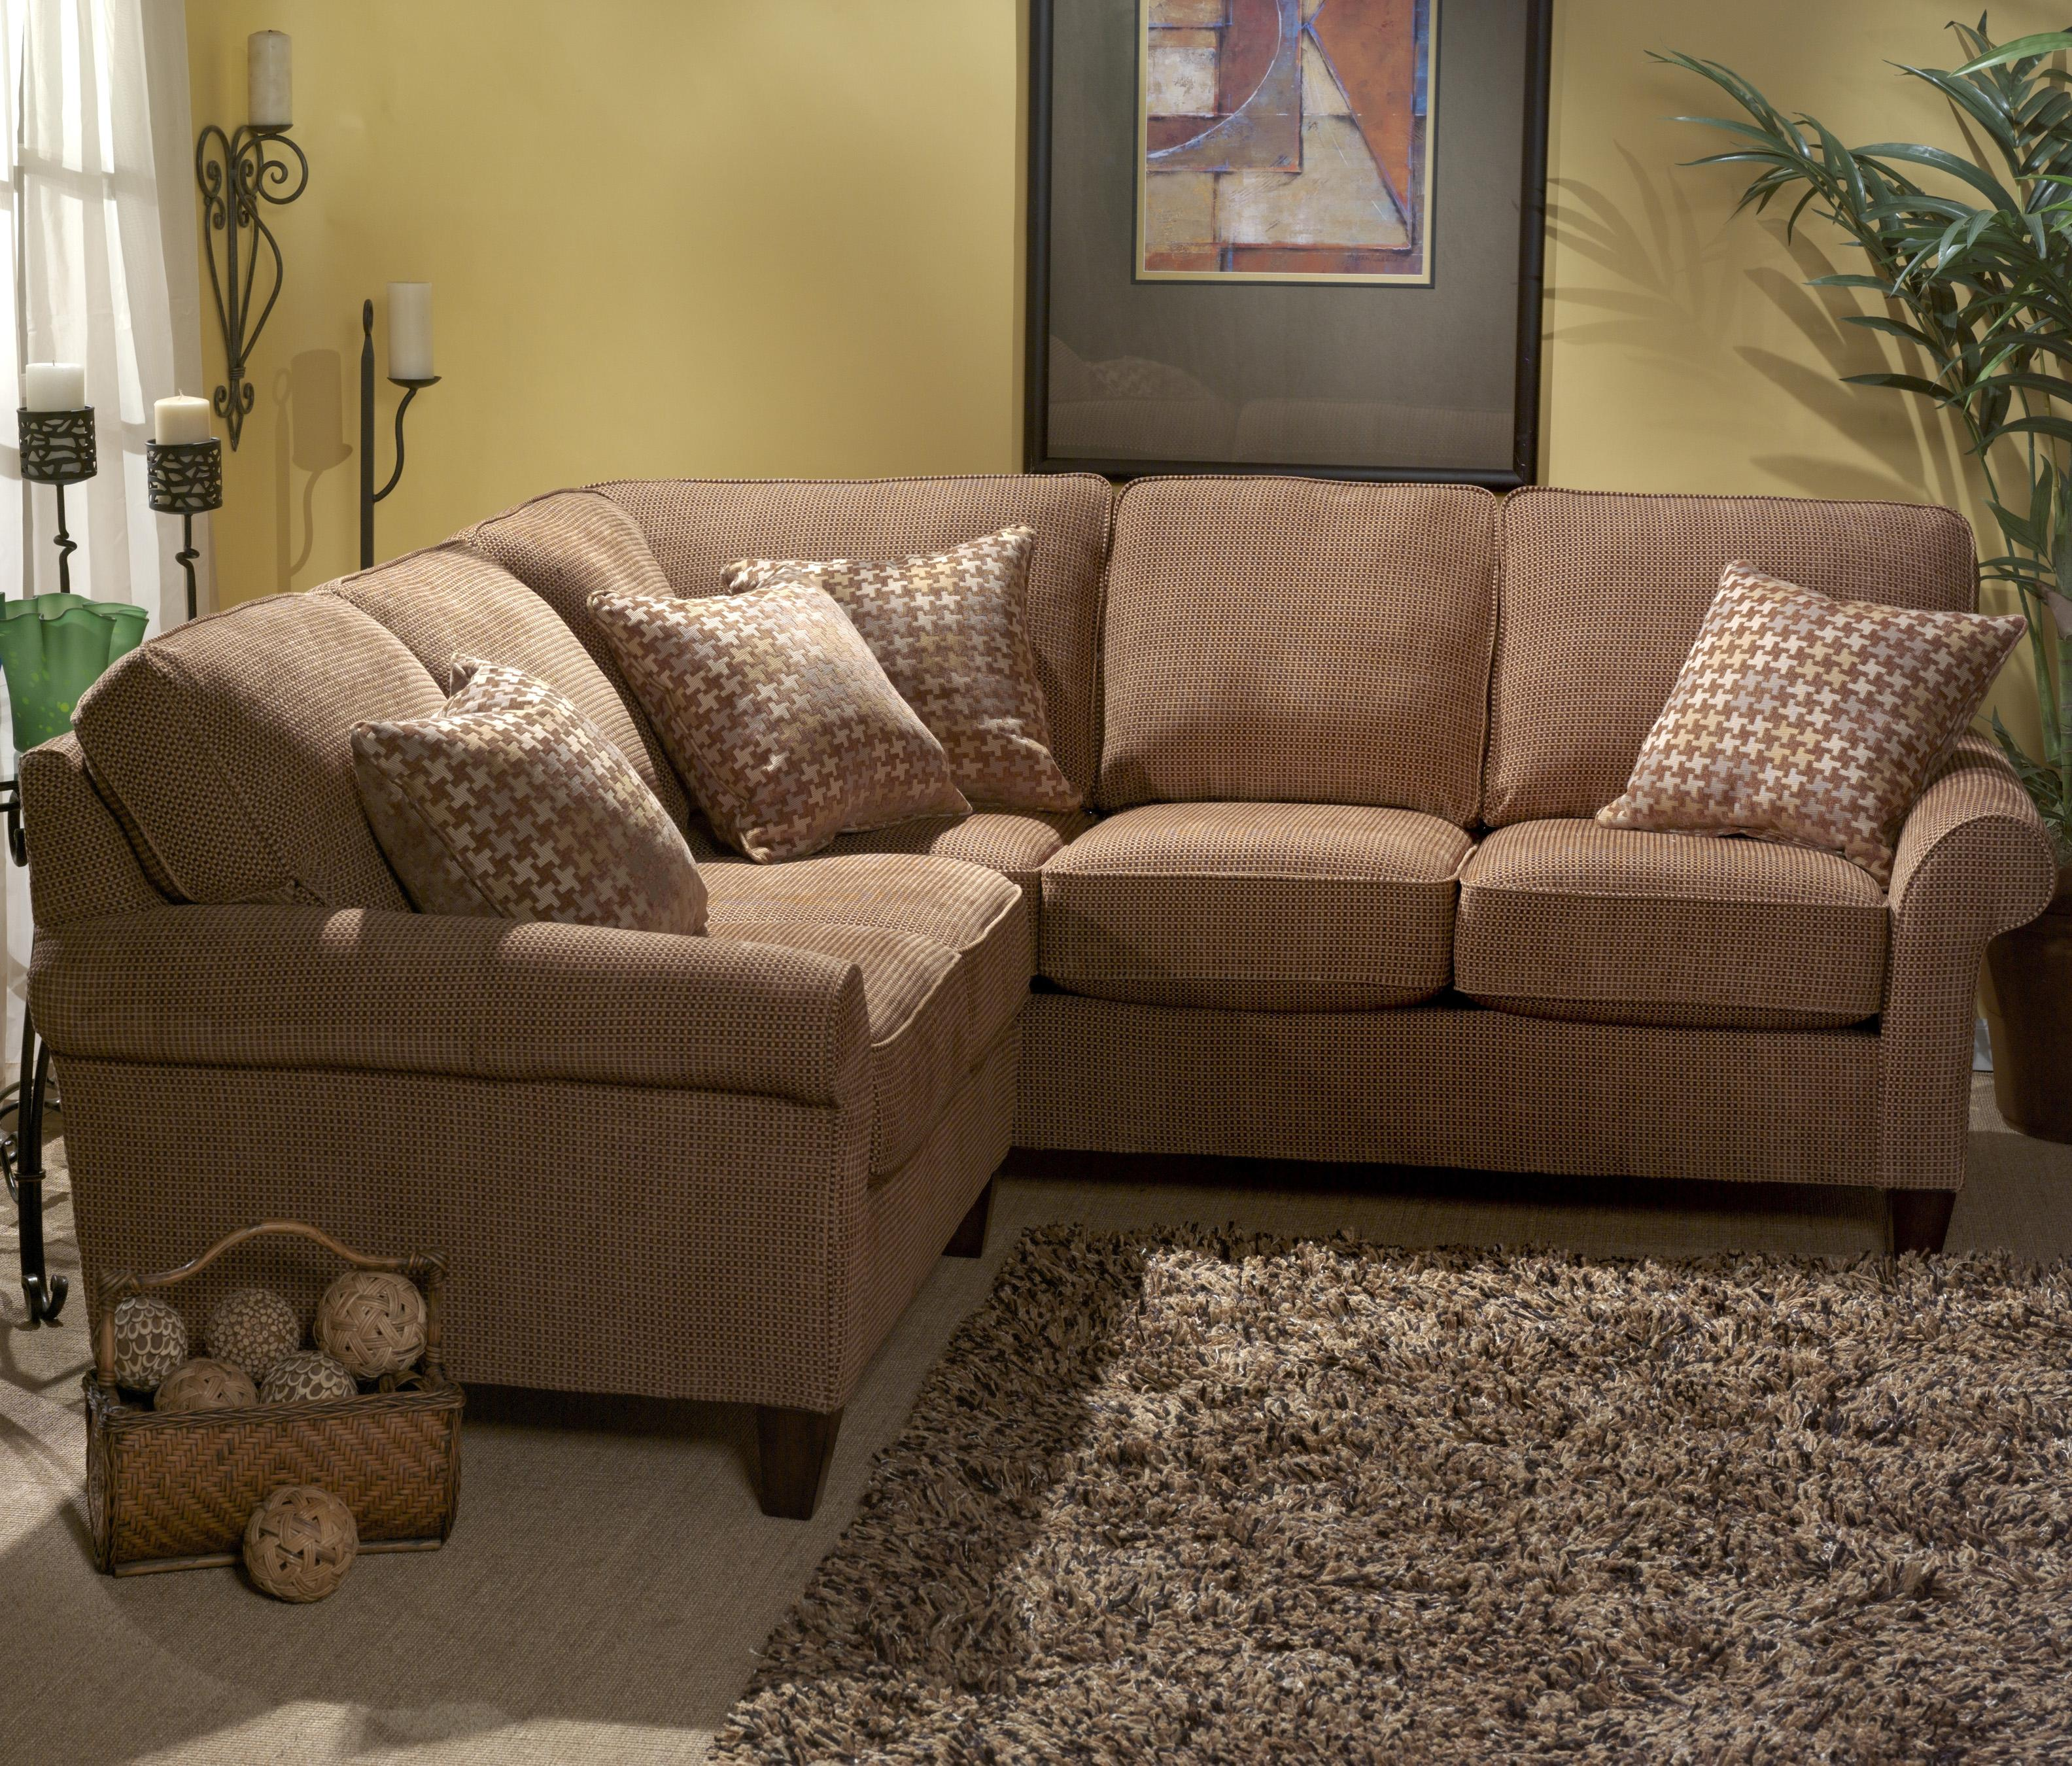 Sofa Express Pineville Nc Flexsteel Westside Casual Two Piece Sectional Sofa Ahfa Sofa